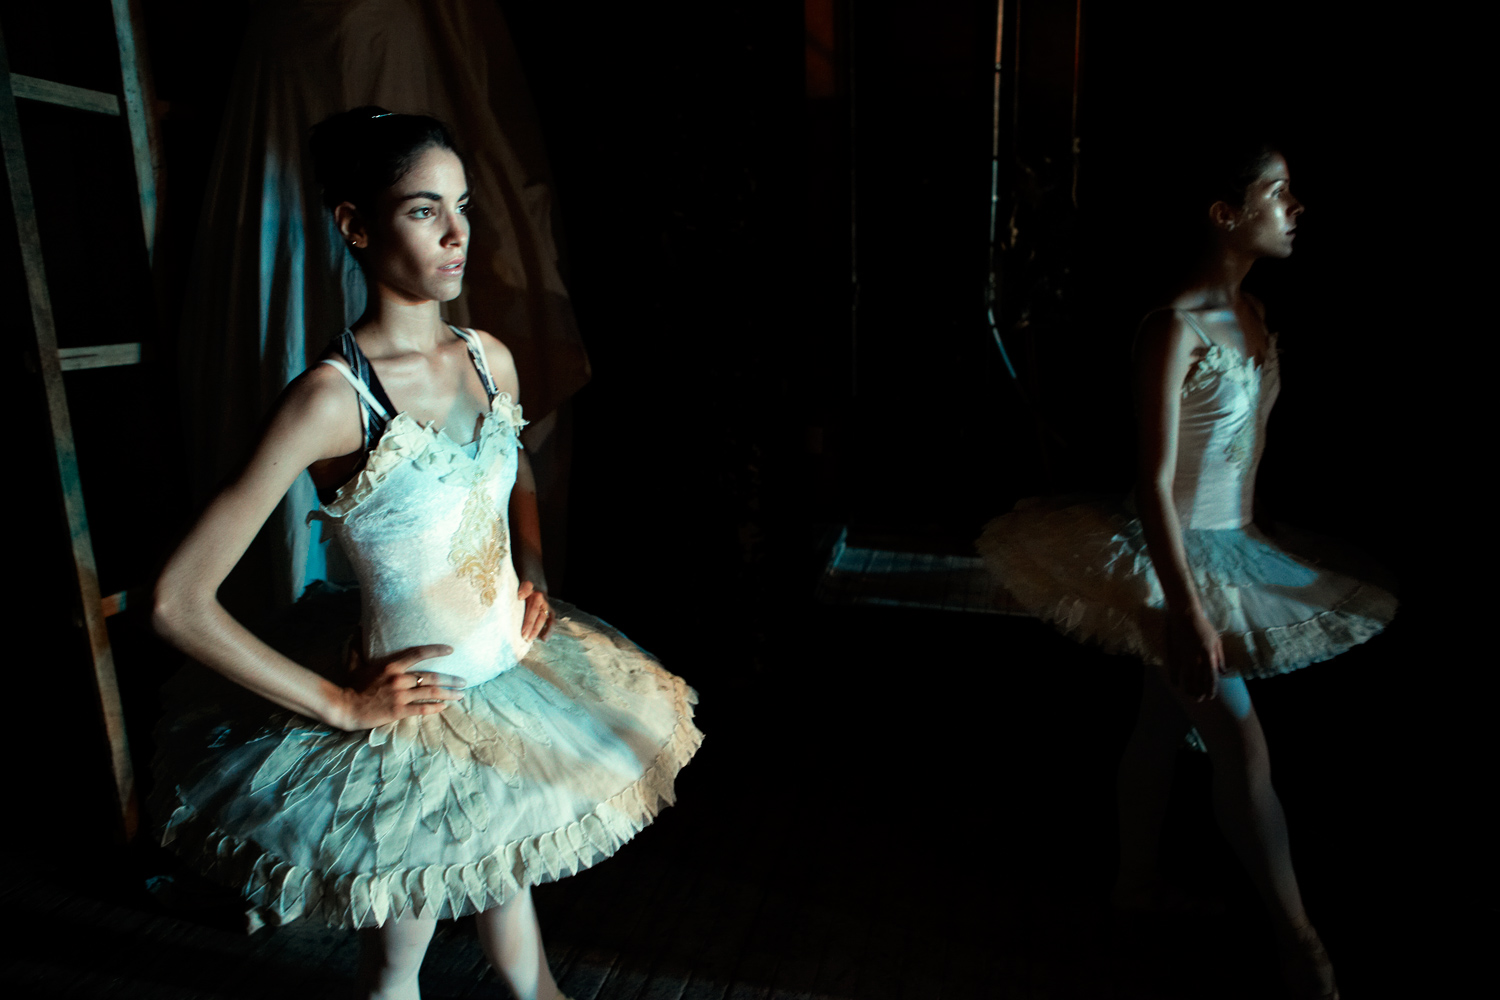 A young dancer of the Ballet Nacional de Cuba waits backstage during a performance of Swan Lake in Havana, Cuba, May 2011.                                                               The company will perform Tchaikovsky's ballet and other classics in the U.S.—its first tour of America in eight years and the first time many of these young dancers will set foot on American soil.